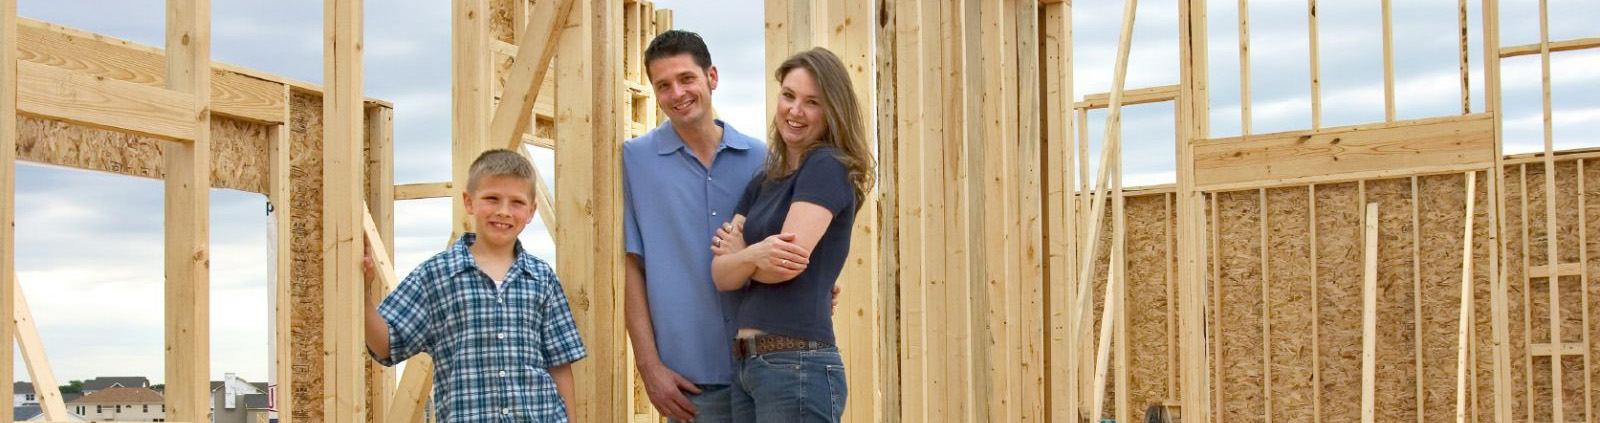 New Construction Inspection & Deficiency Walk-Through